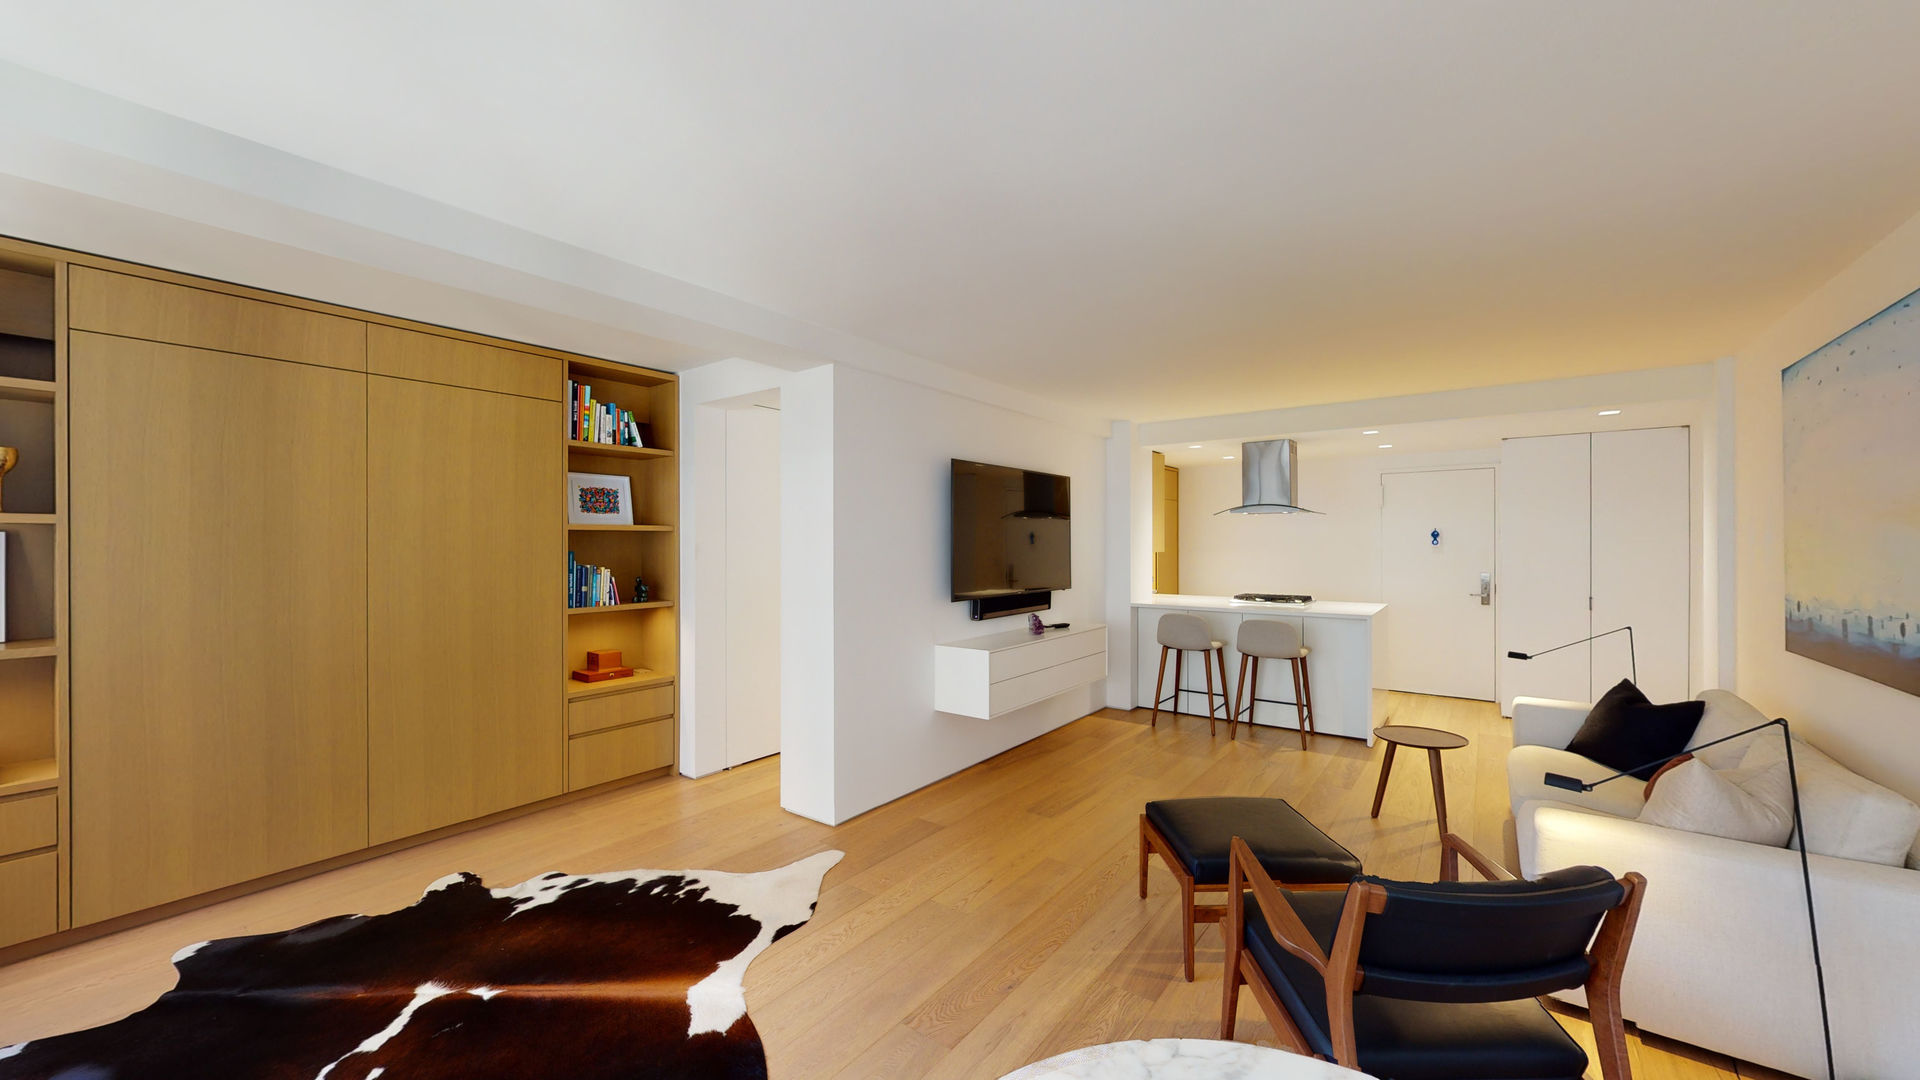 Apartment for sale at 240 East 55th Street, Apt 10E